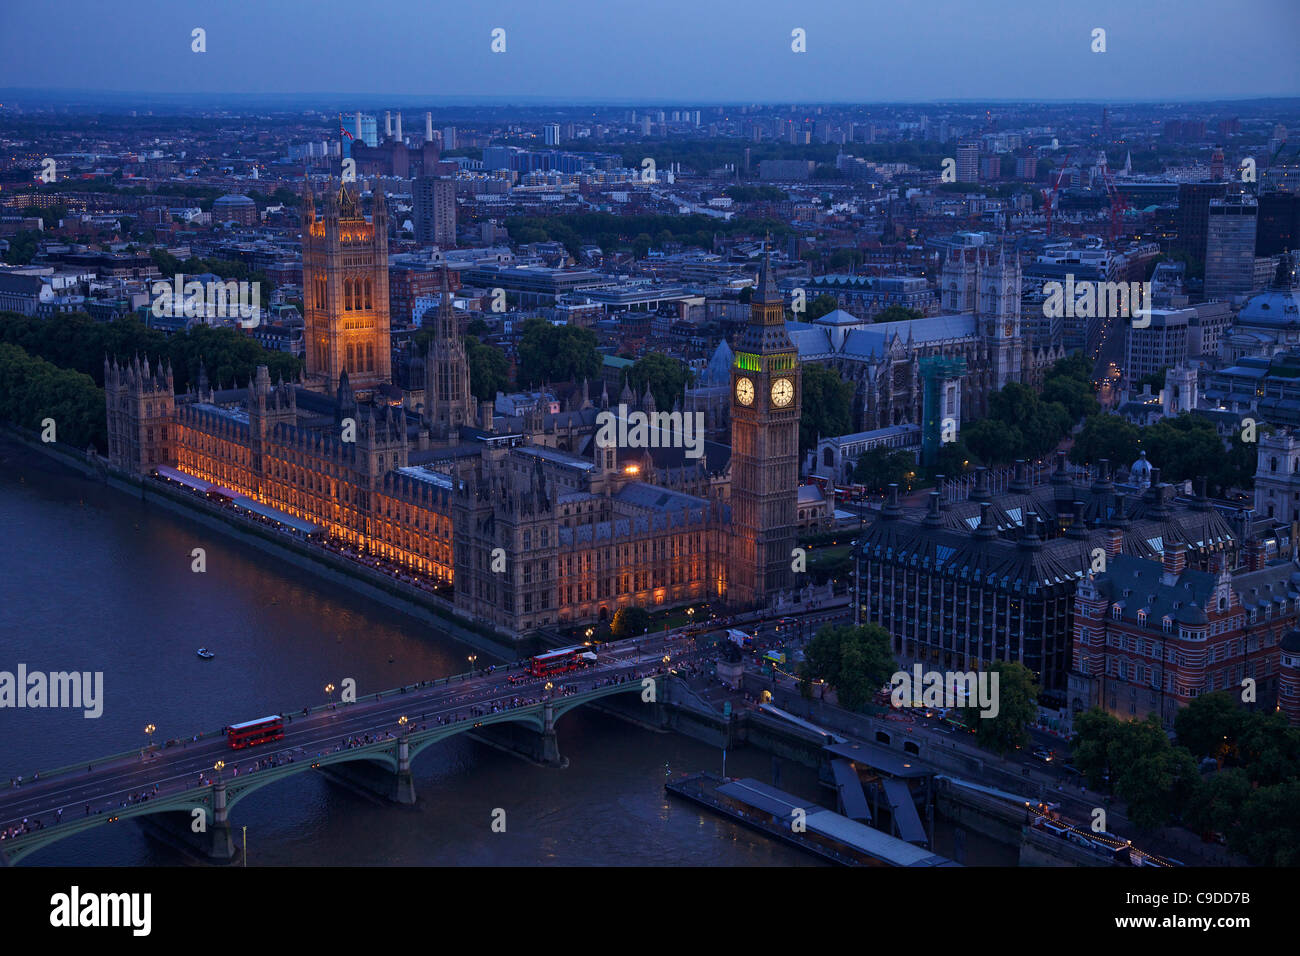 Aerial view of the Houses of Parliament, Big Ben and the River Thames from the London Eye at dusk, London,  England, - Stock Image